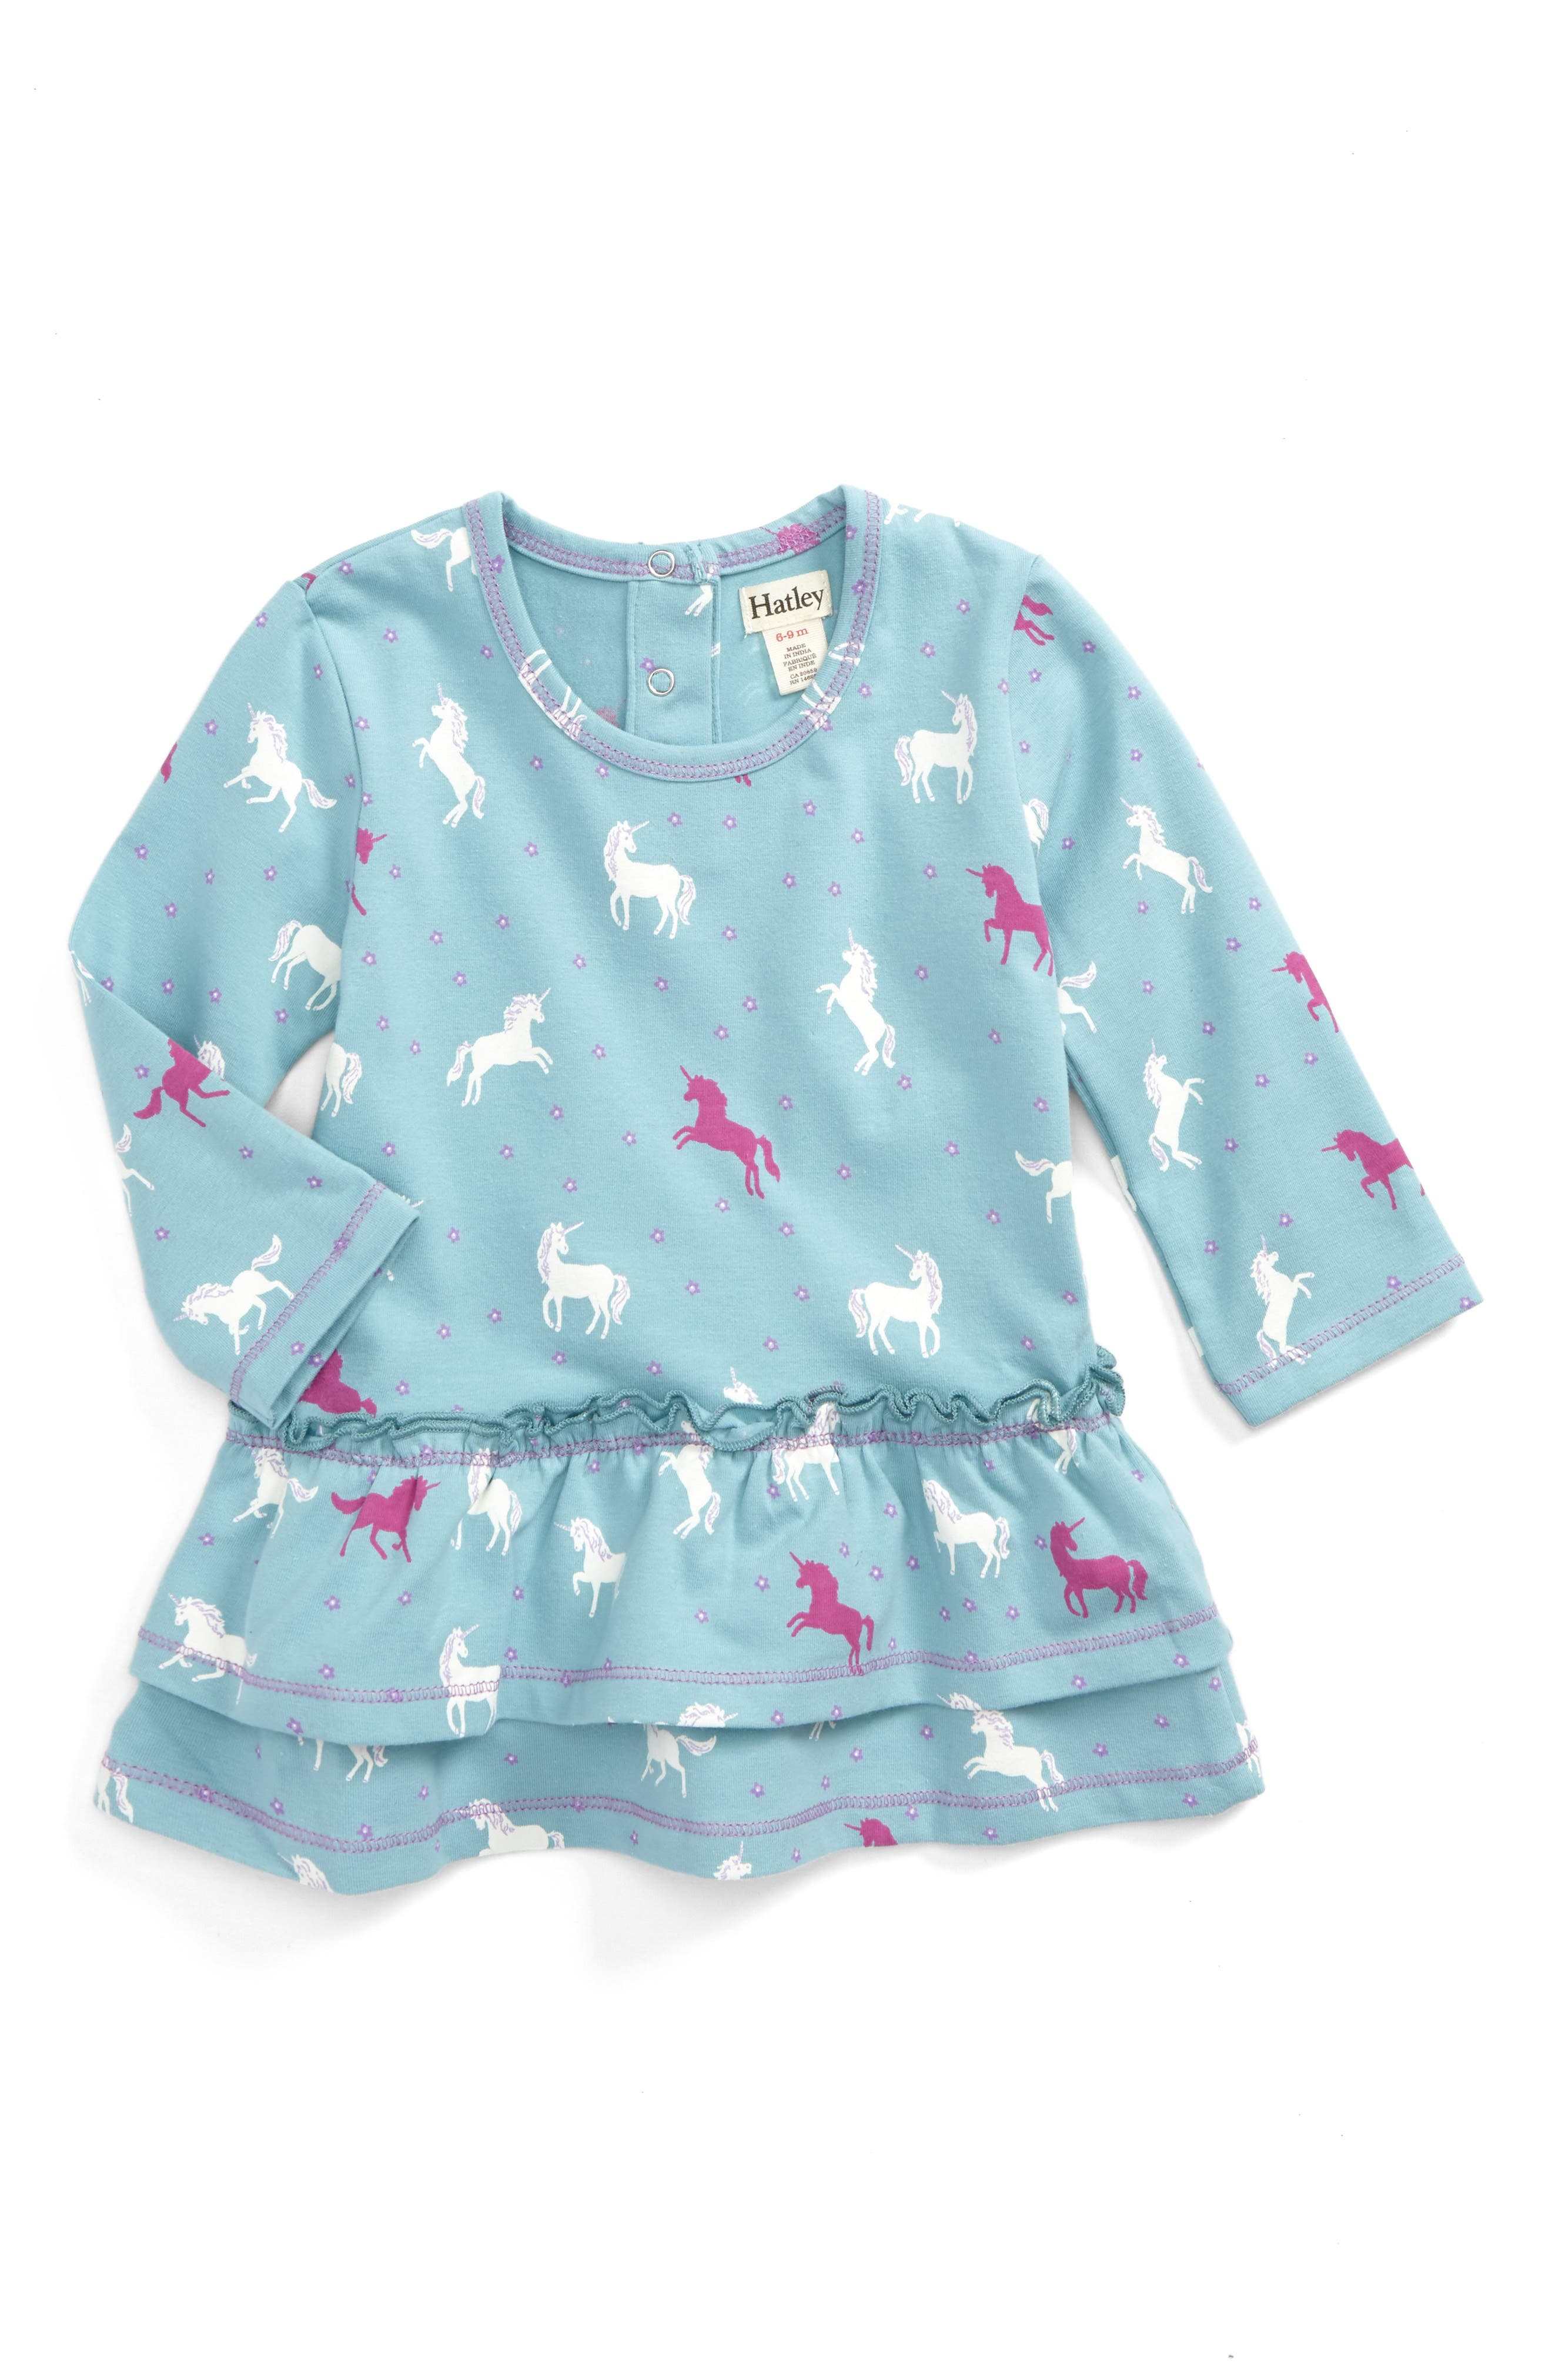 Alternate Image 1 Selected - Hatley Print Layered Dress (Baby Girls)